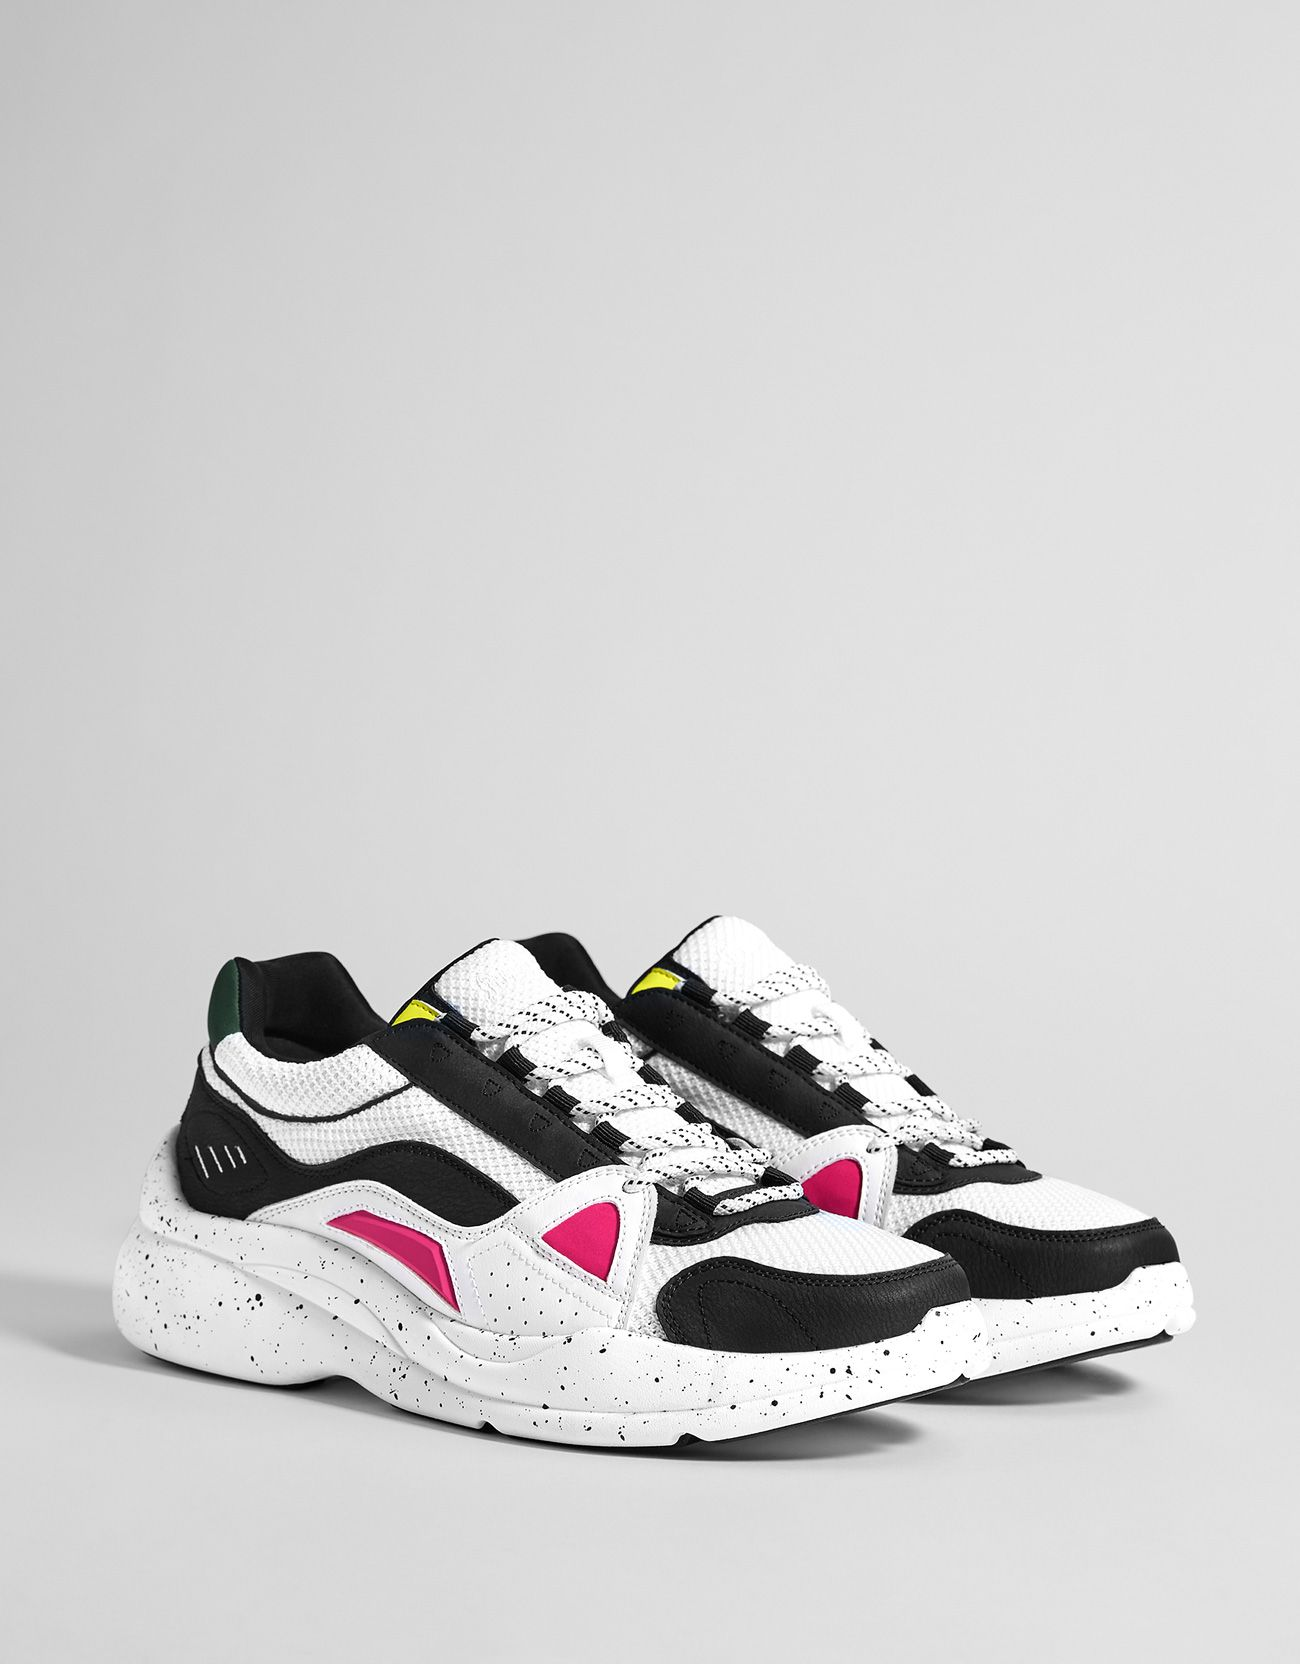 3af82c59a01214 Women's trainers with multicoloured pieces - Trainers - Bershka United  Kingdom